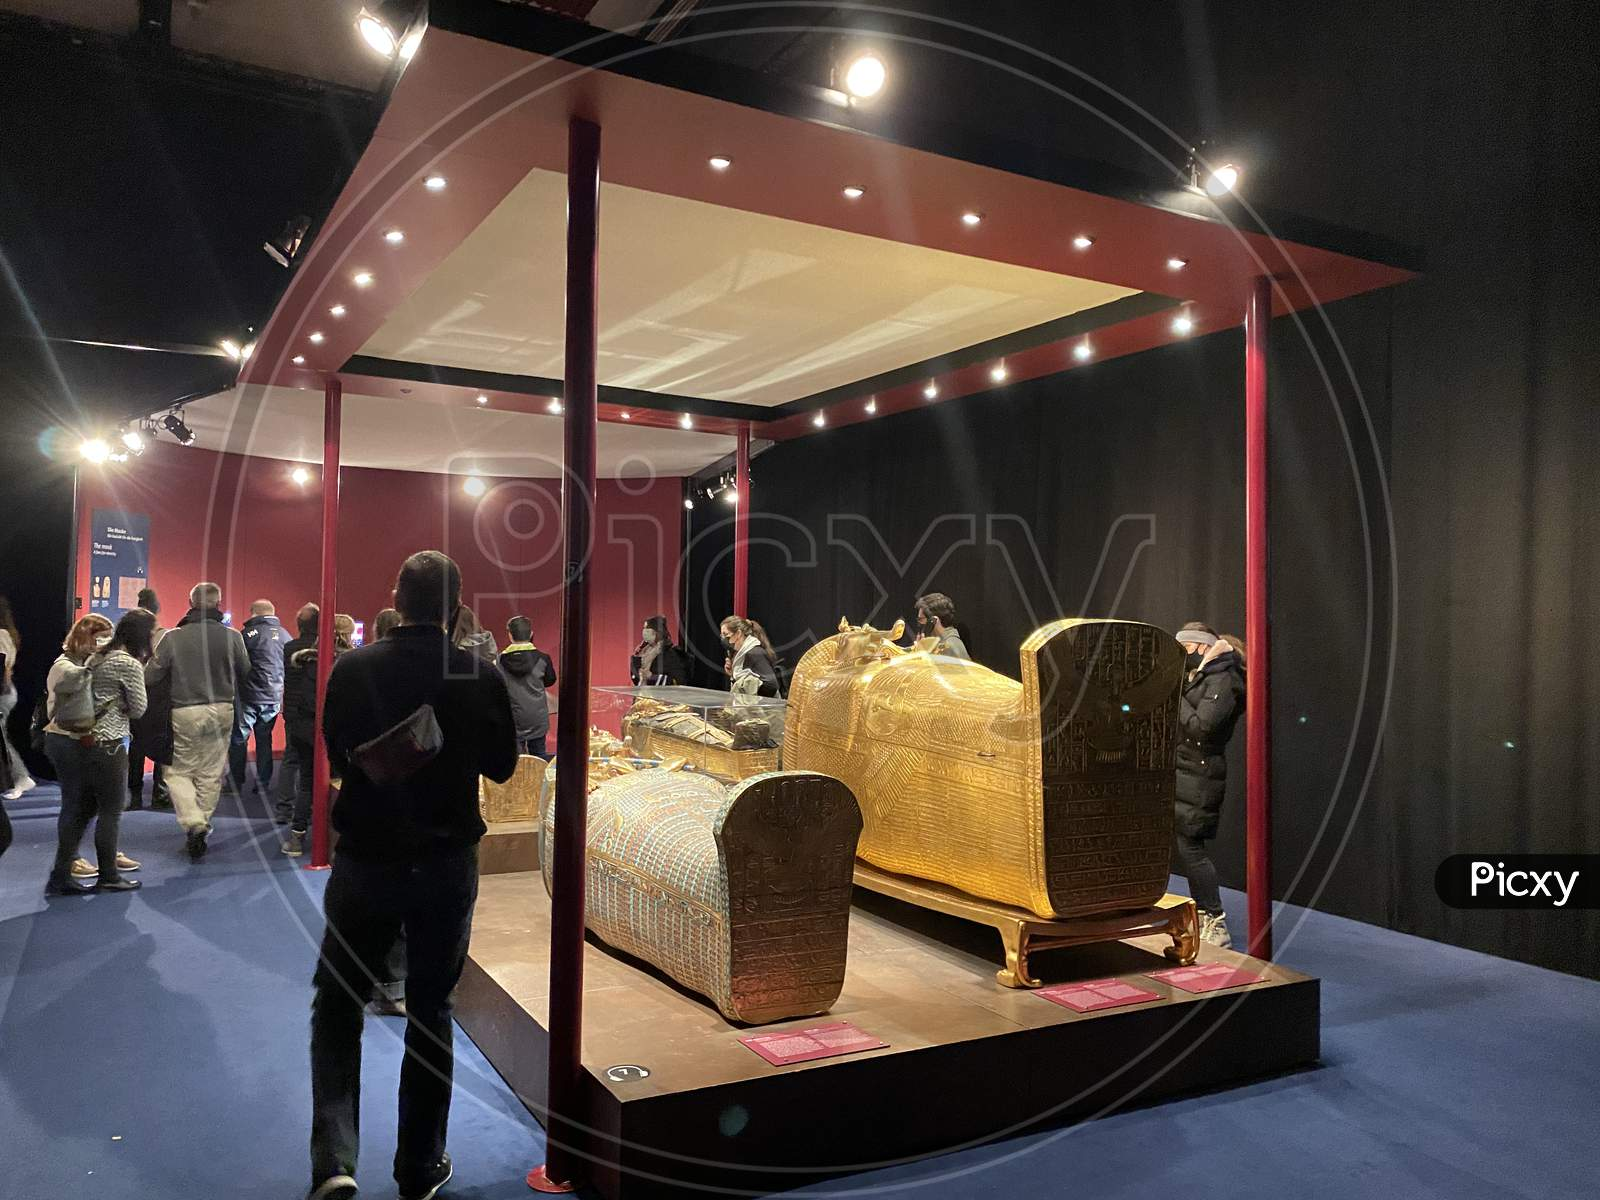 Exhibition Of Egypt Pharaoh Tutankhamun In Zurich During Pandemic Time. Tomb And Treasures With Spectators. 14.03.2021 - Oerlikon, Switzerland.